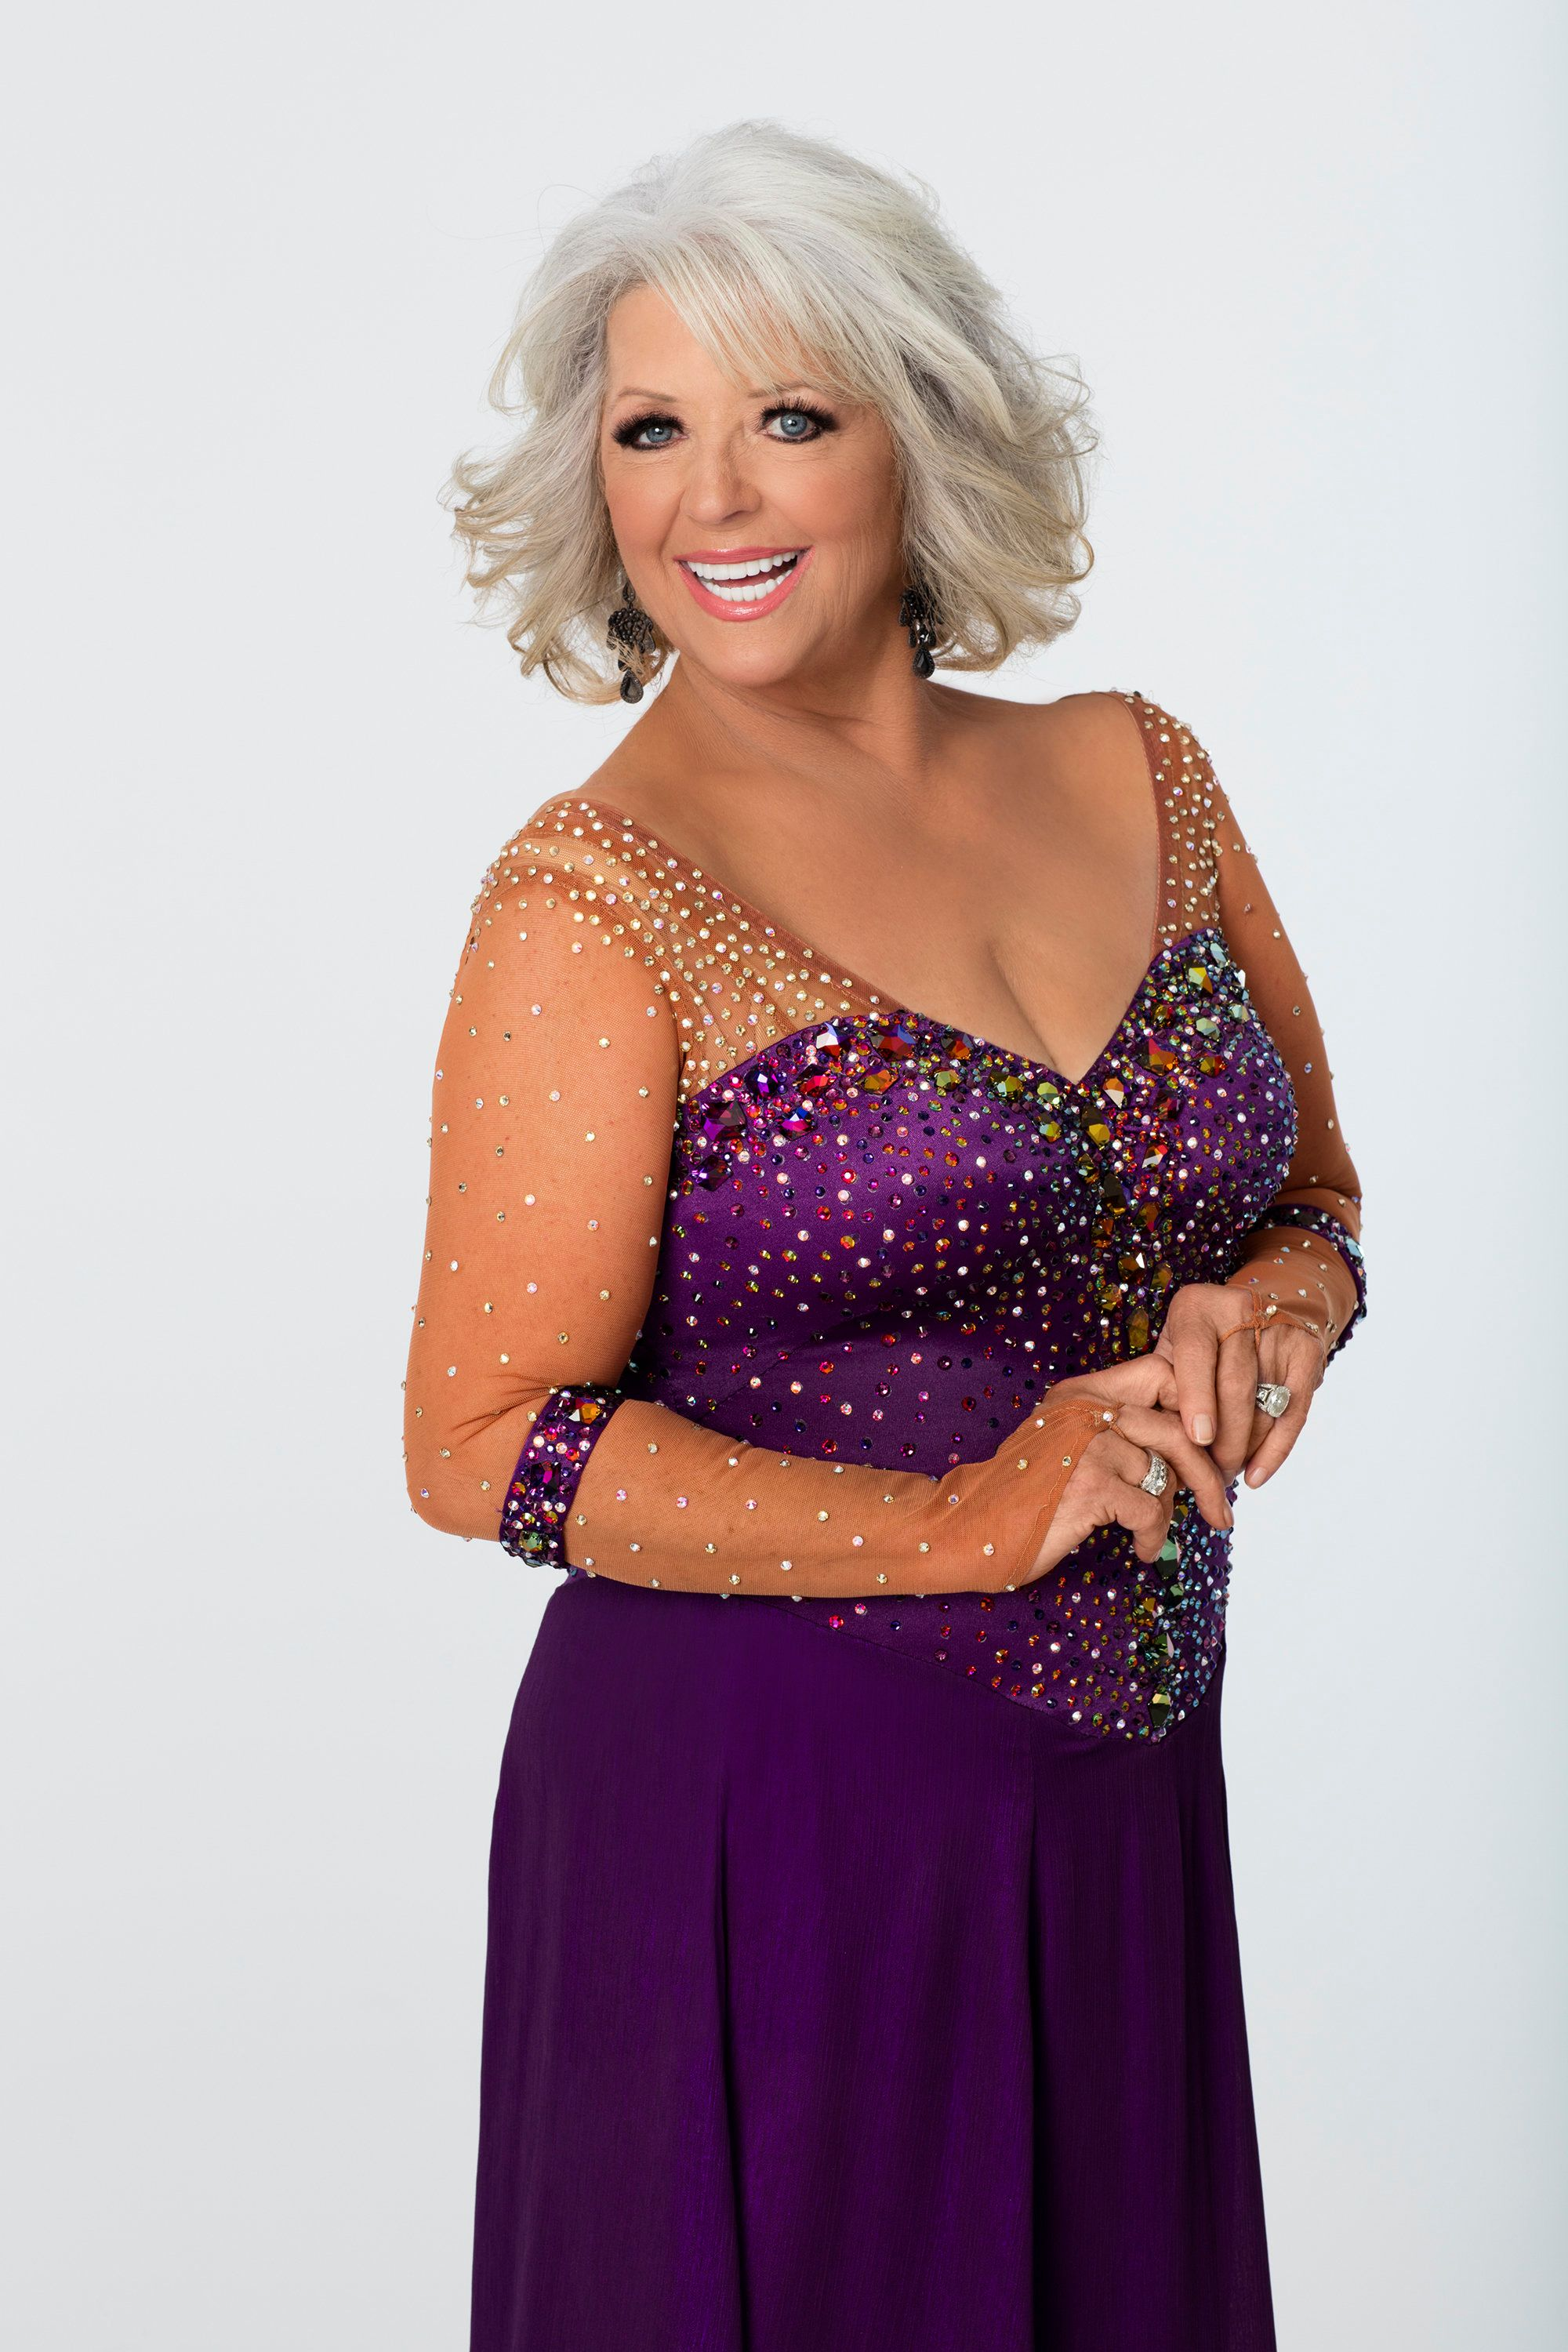 DANCING WITH THE STARS - PAULA DEEN - The celebrity cast of 'Dancing with the Stars' is lacing up their ballroom shoes and getting ready for their first dance on MONDAY, SEPTEMBER 14 (8:00-10:01 p.m., ET) on the ABC Television Network. Paula Deen is partnered with Louis van Amstel. (Photo by Craig Sjodin/ABC via Getty Images)